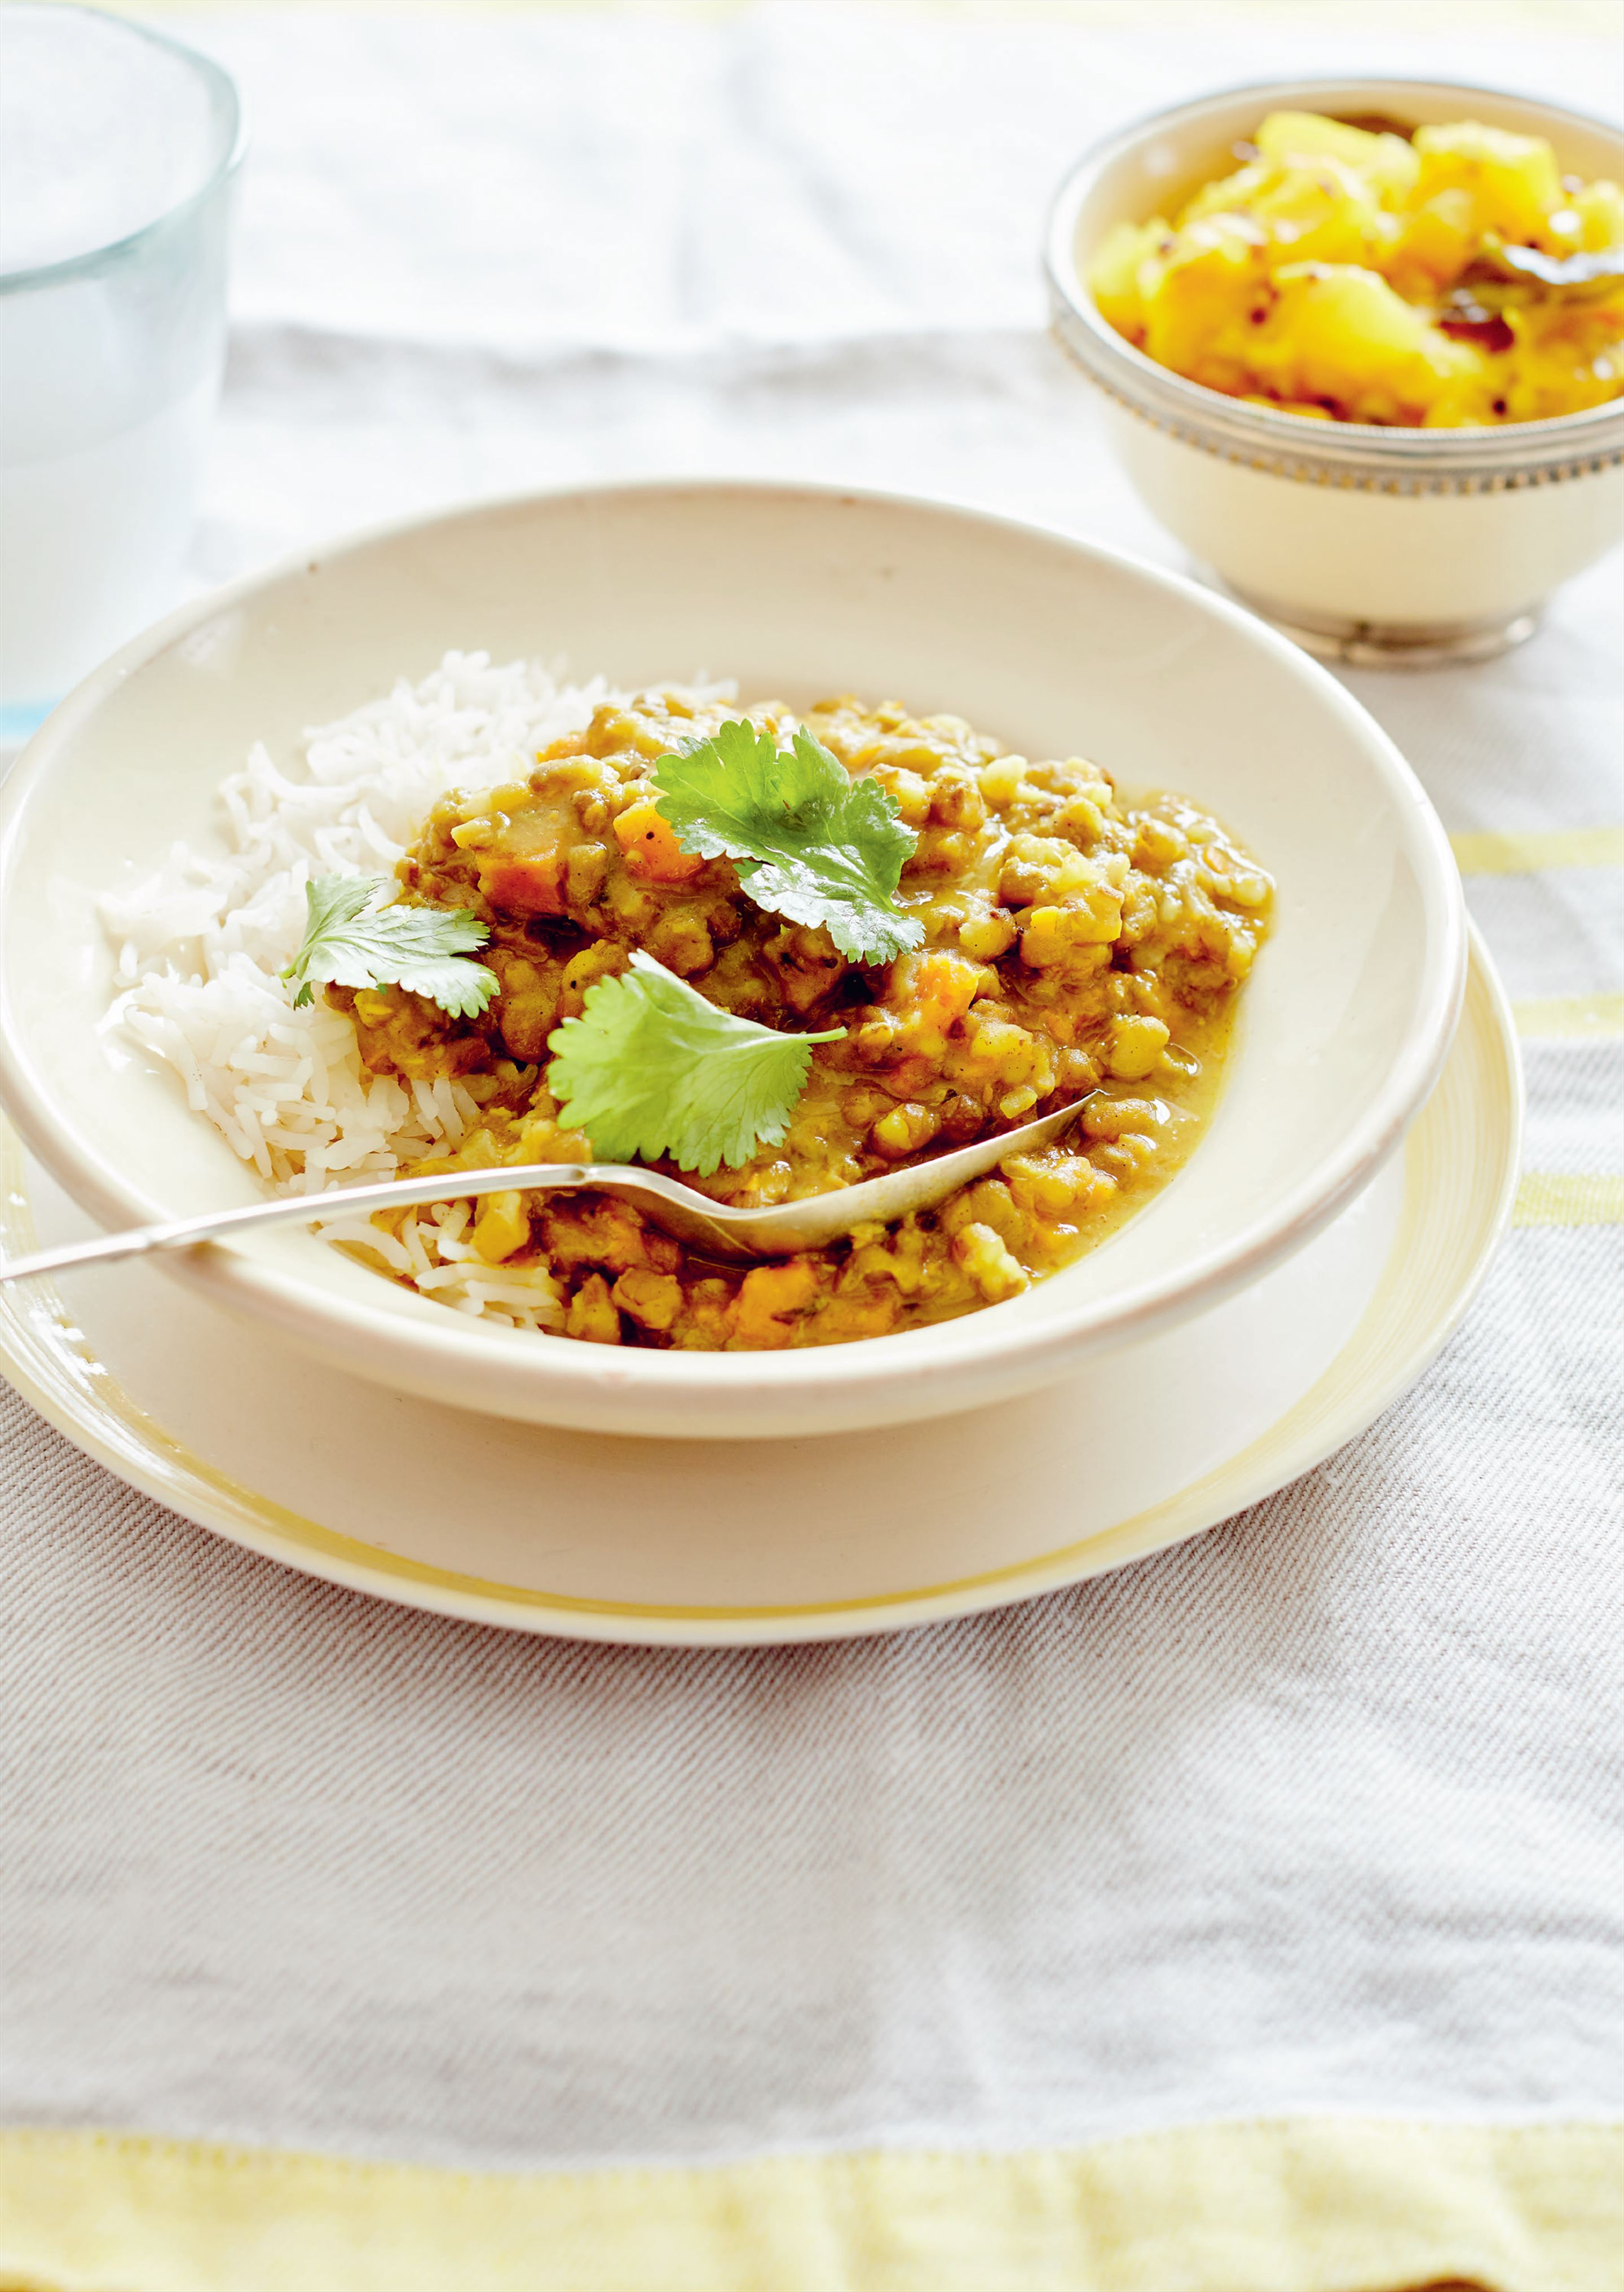 Dal with lemon or lime curry